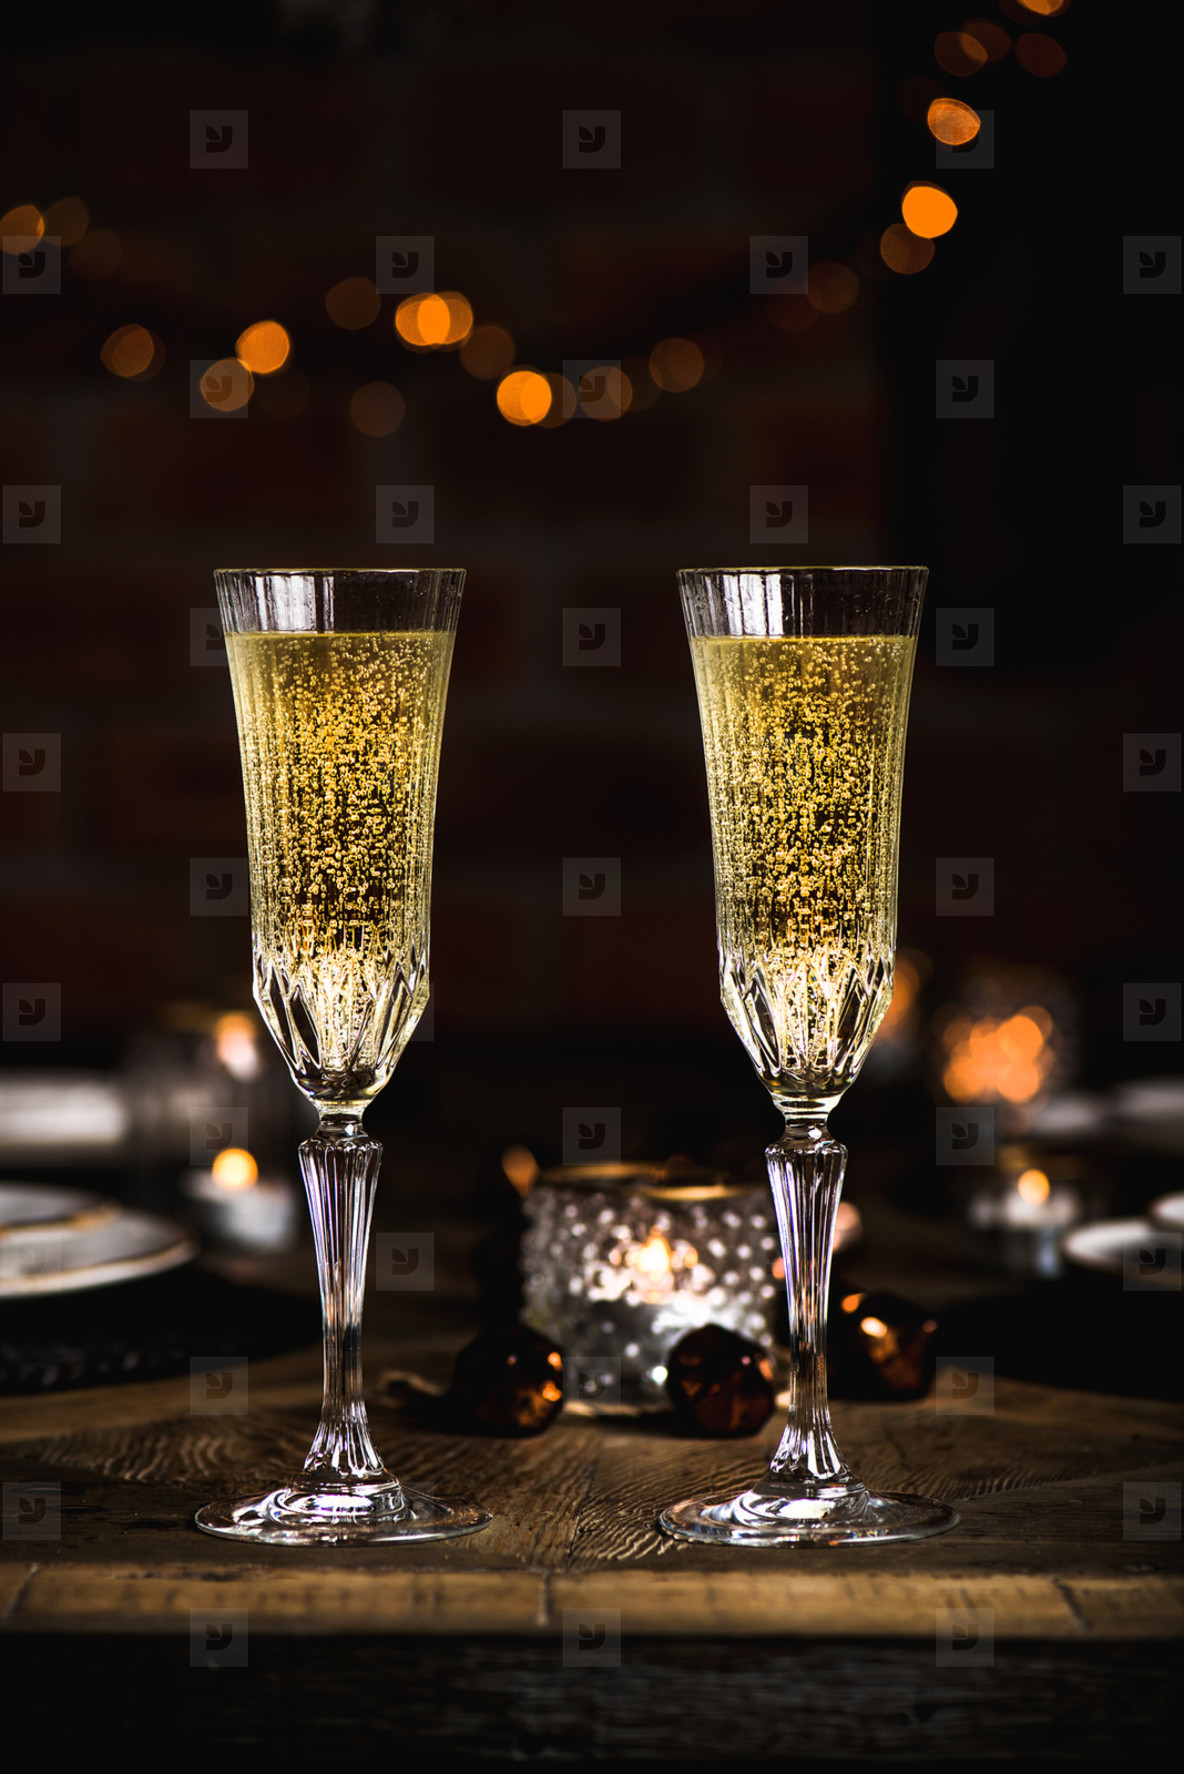 Christmas or New year festive set with glasses of champagne